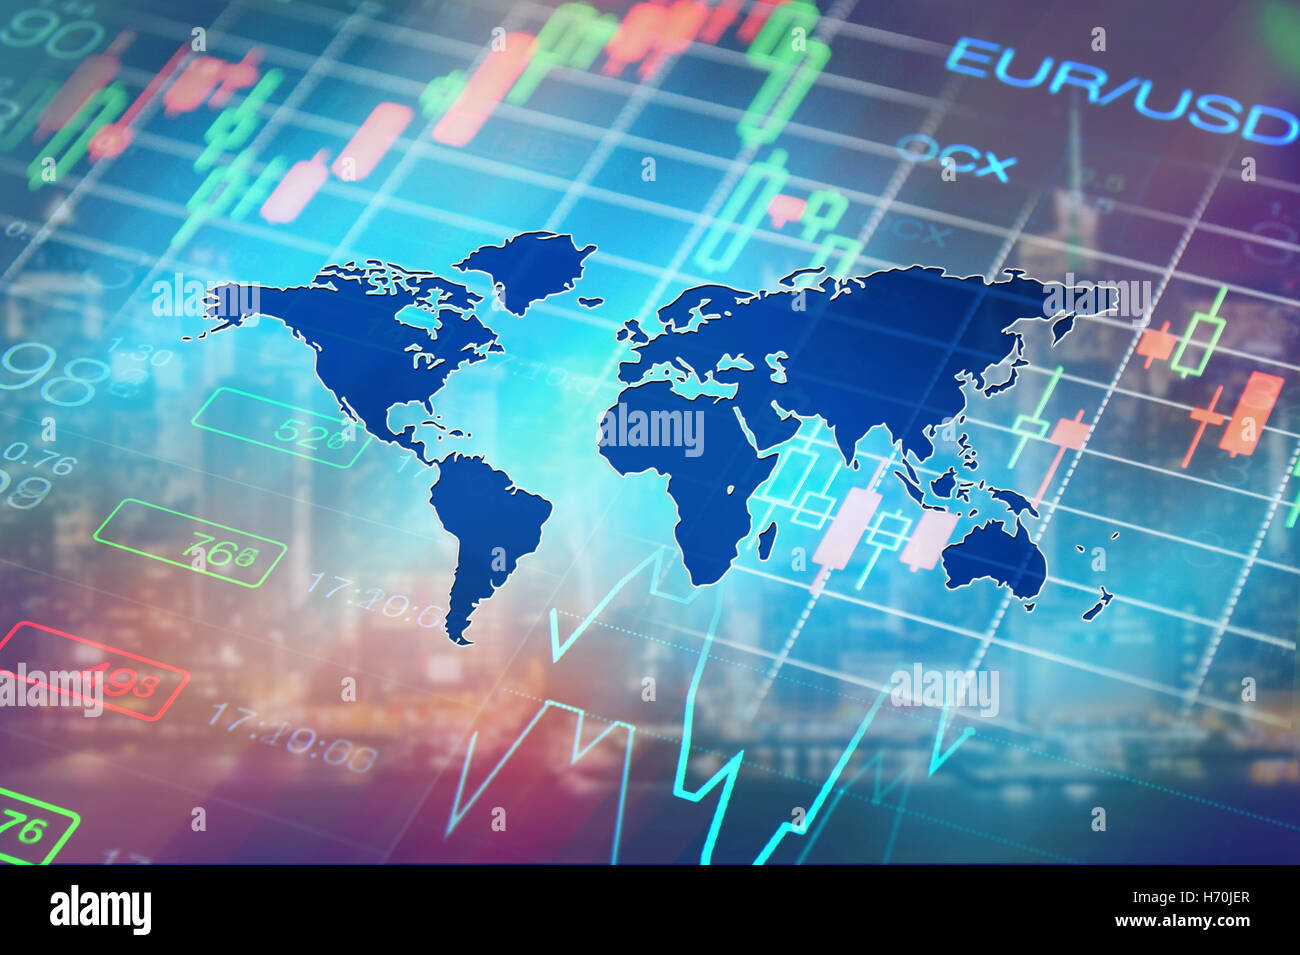 Forex financial news